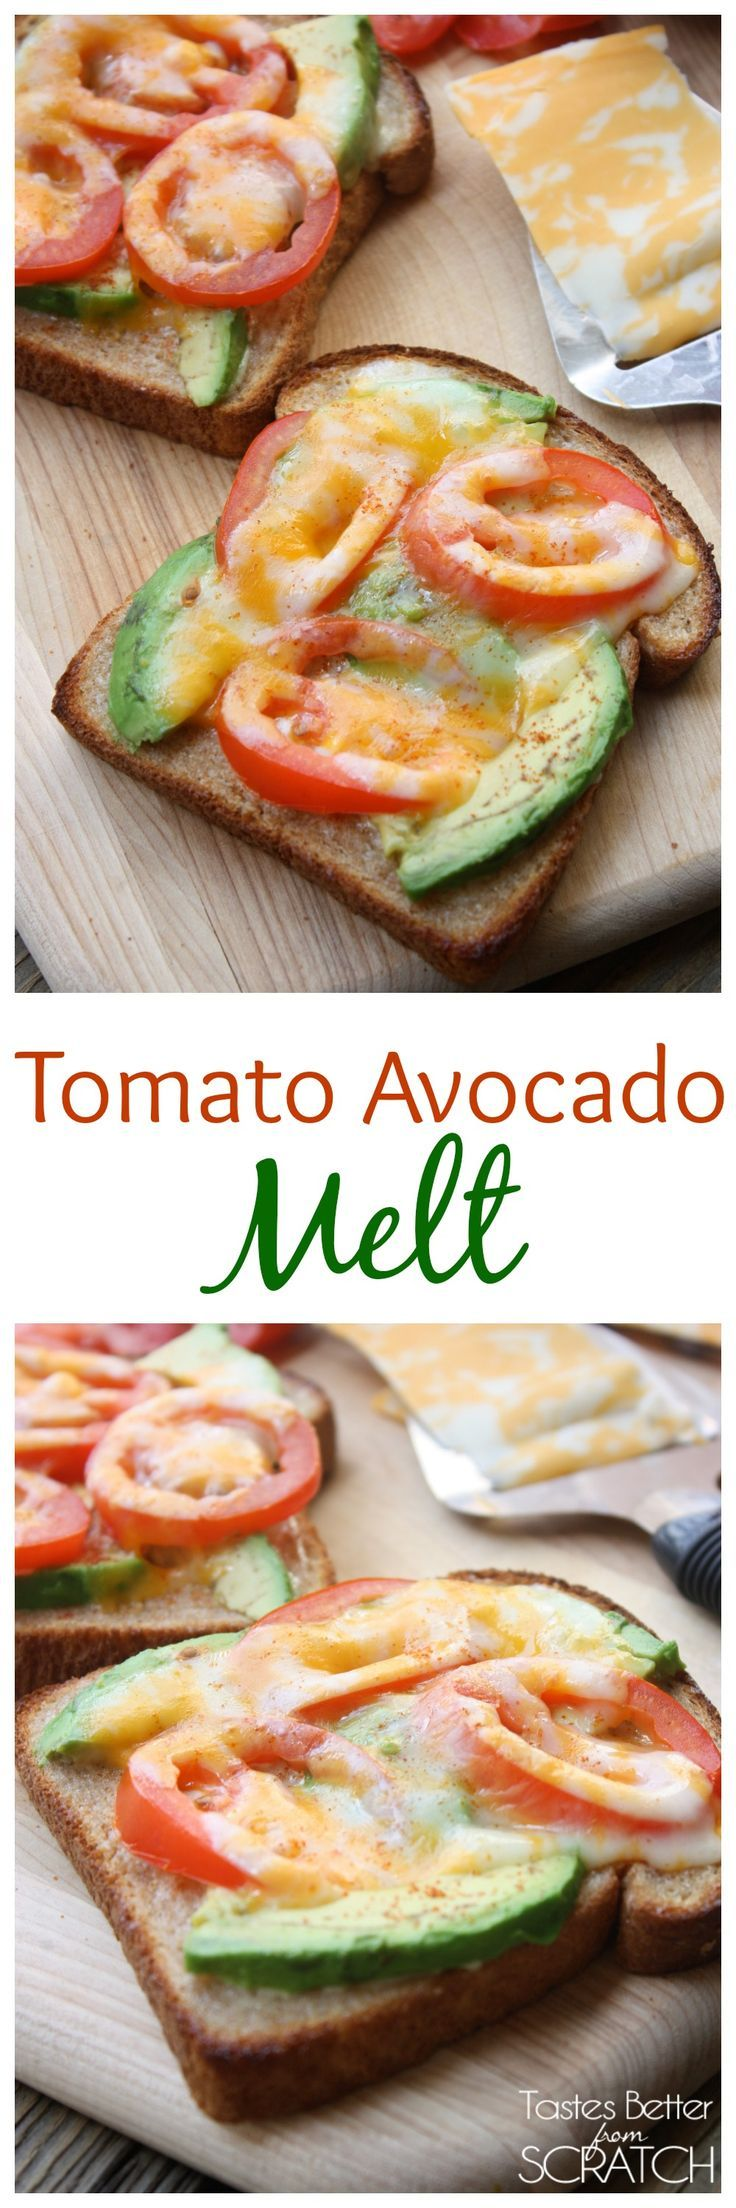 This is my go-to quick lunch or snack and it's good for you to!!